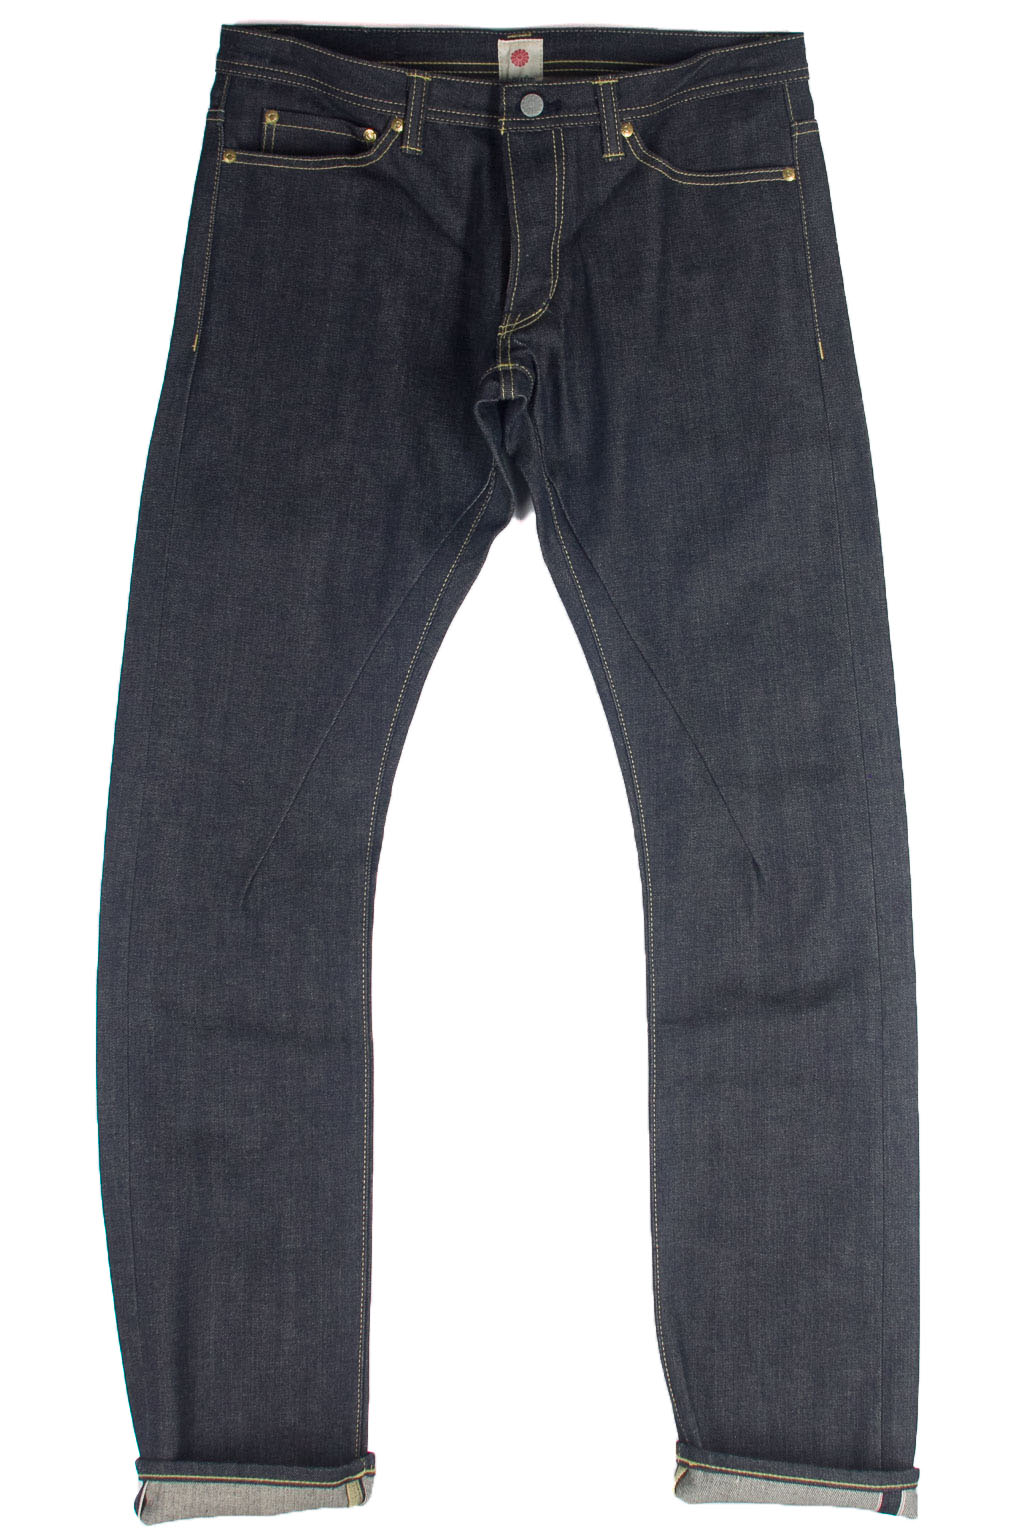 008 Low Rise Slim Fit Indigo Jeans